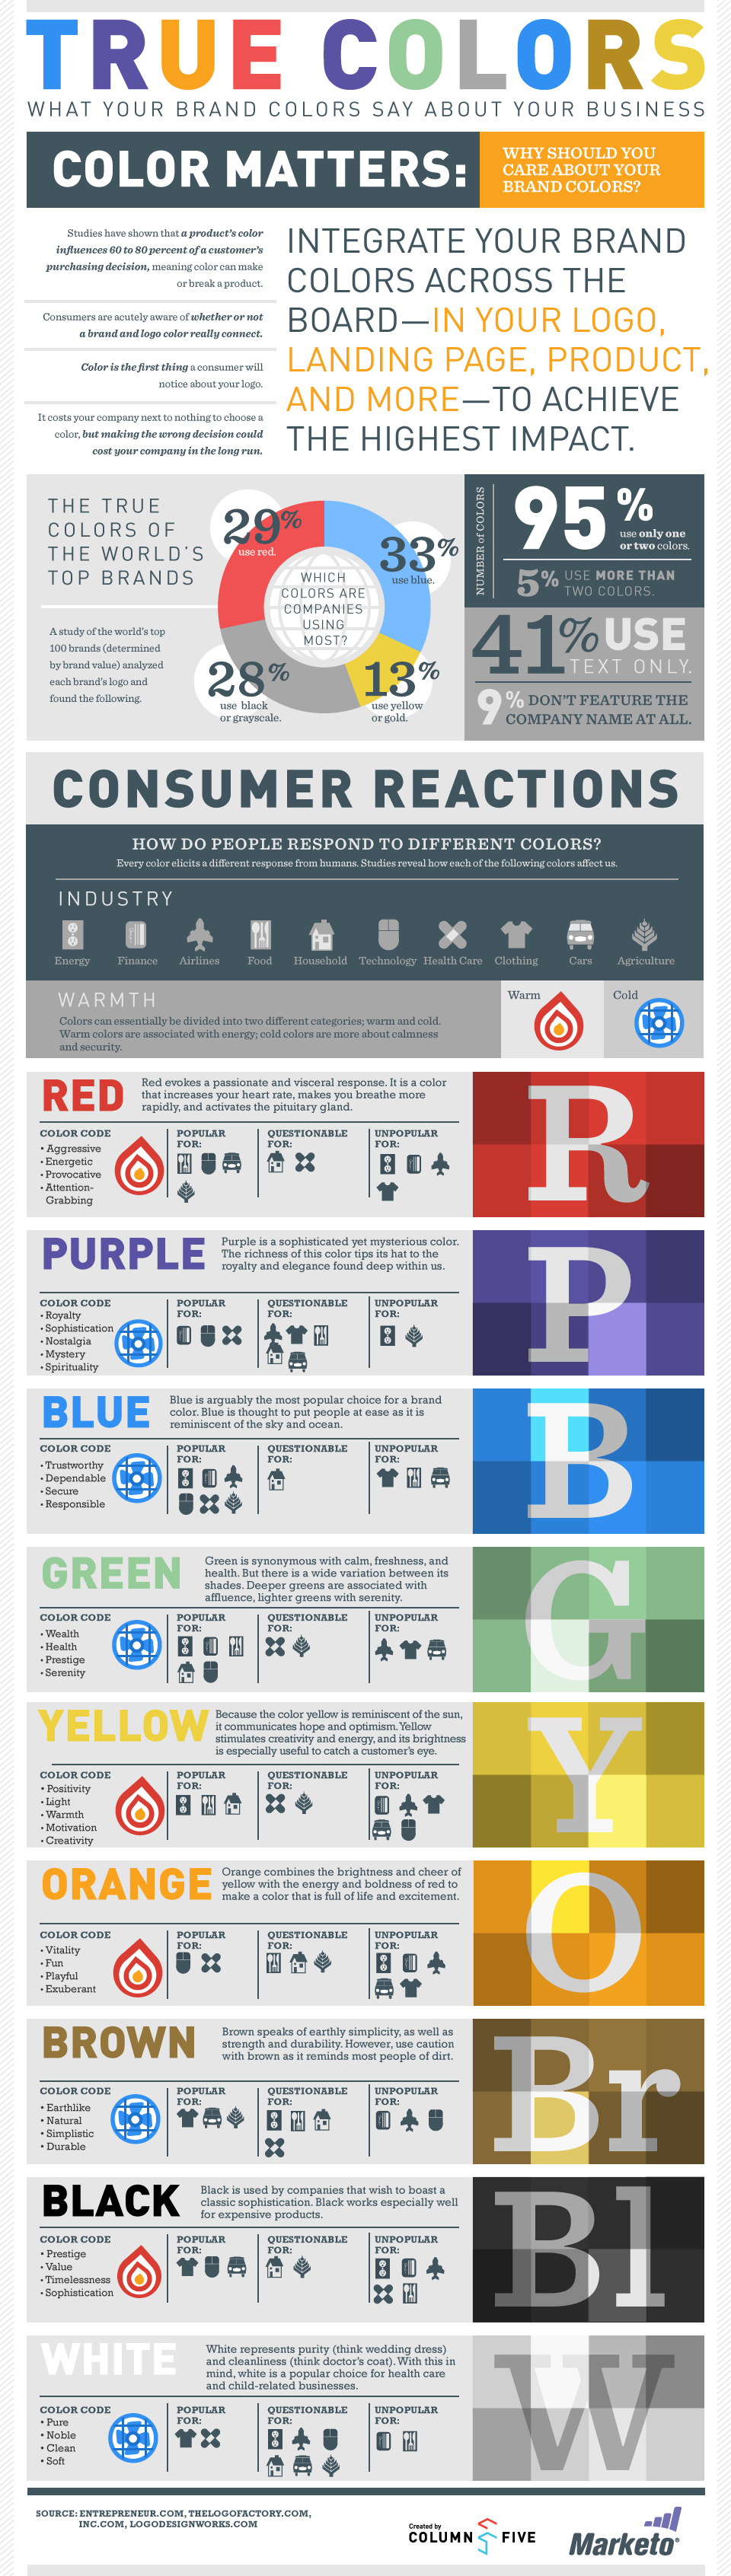 What Your Brand Colors Say About Your Business [Infographic]